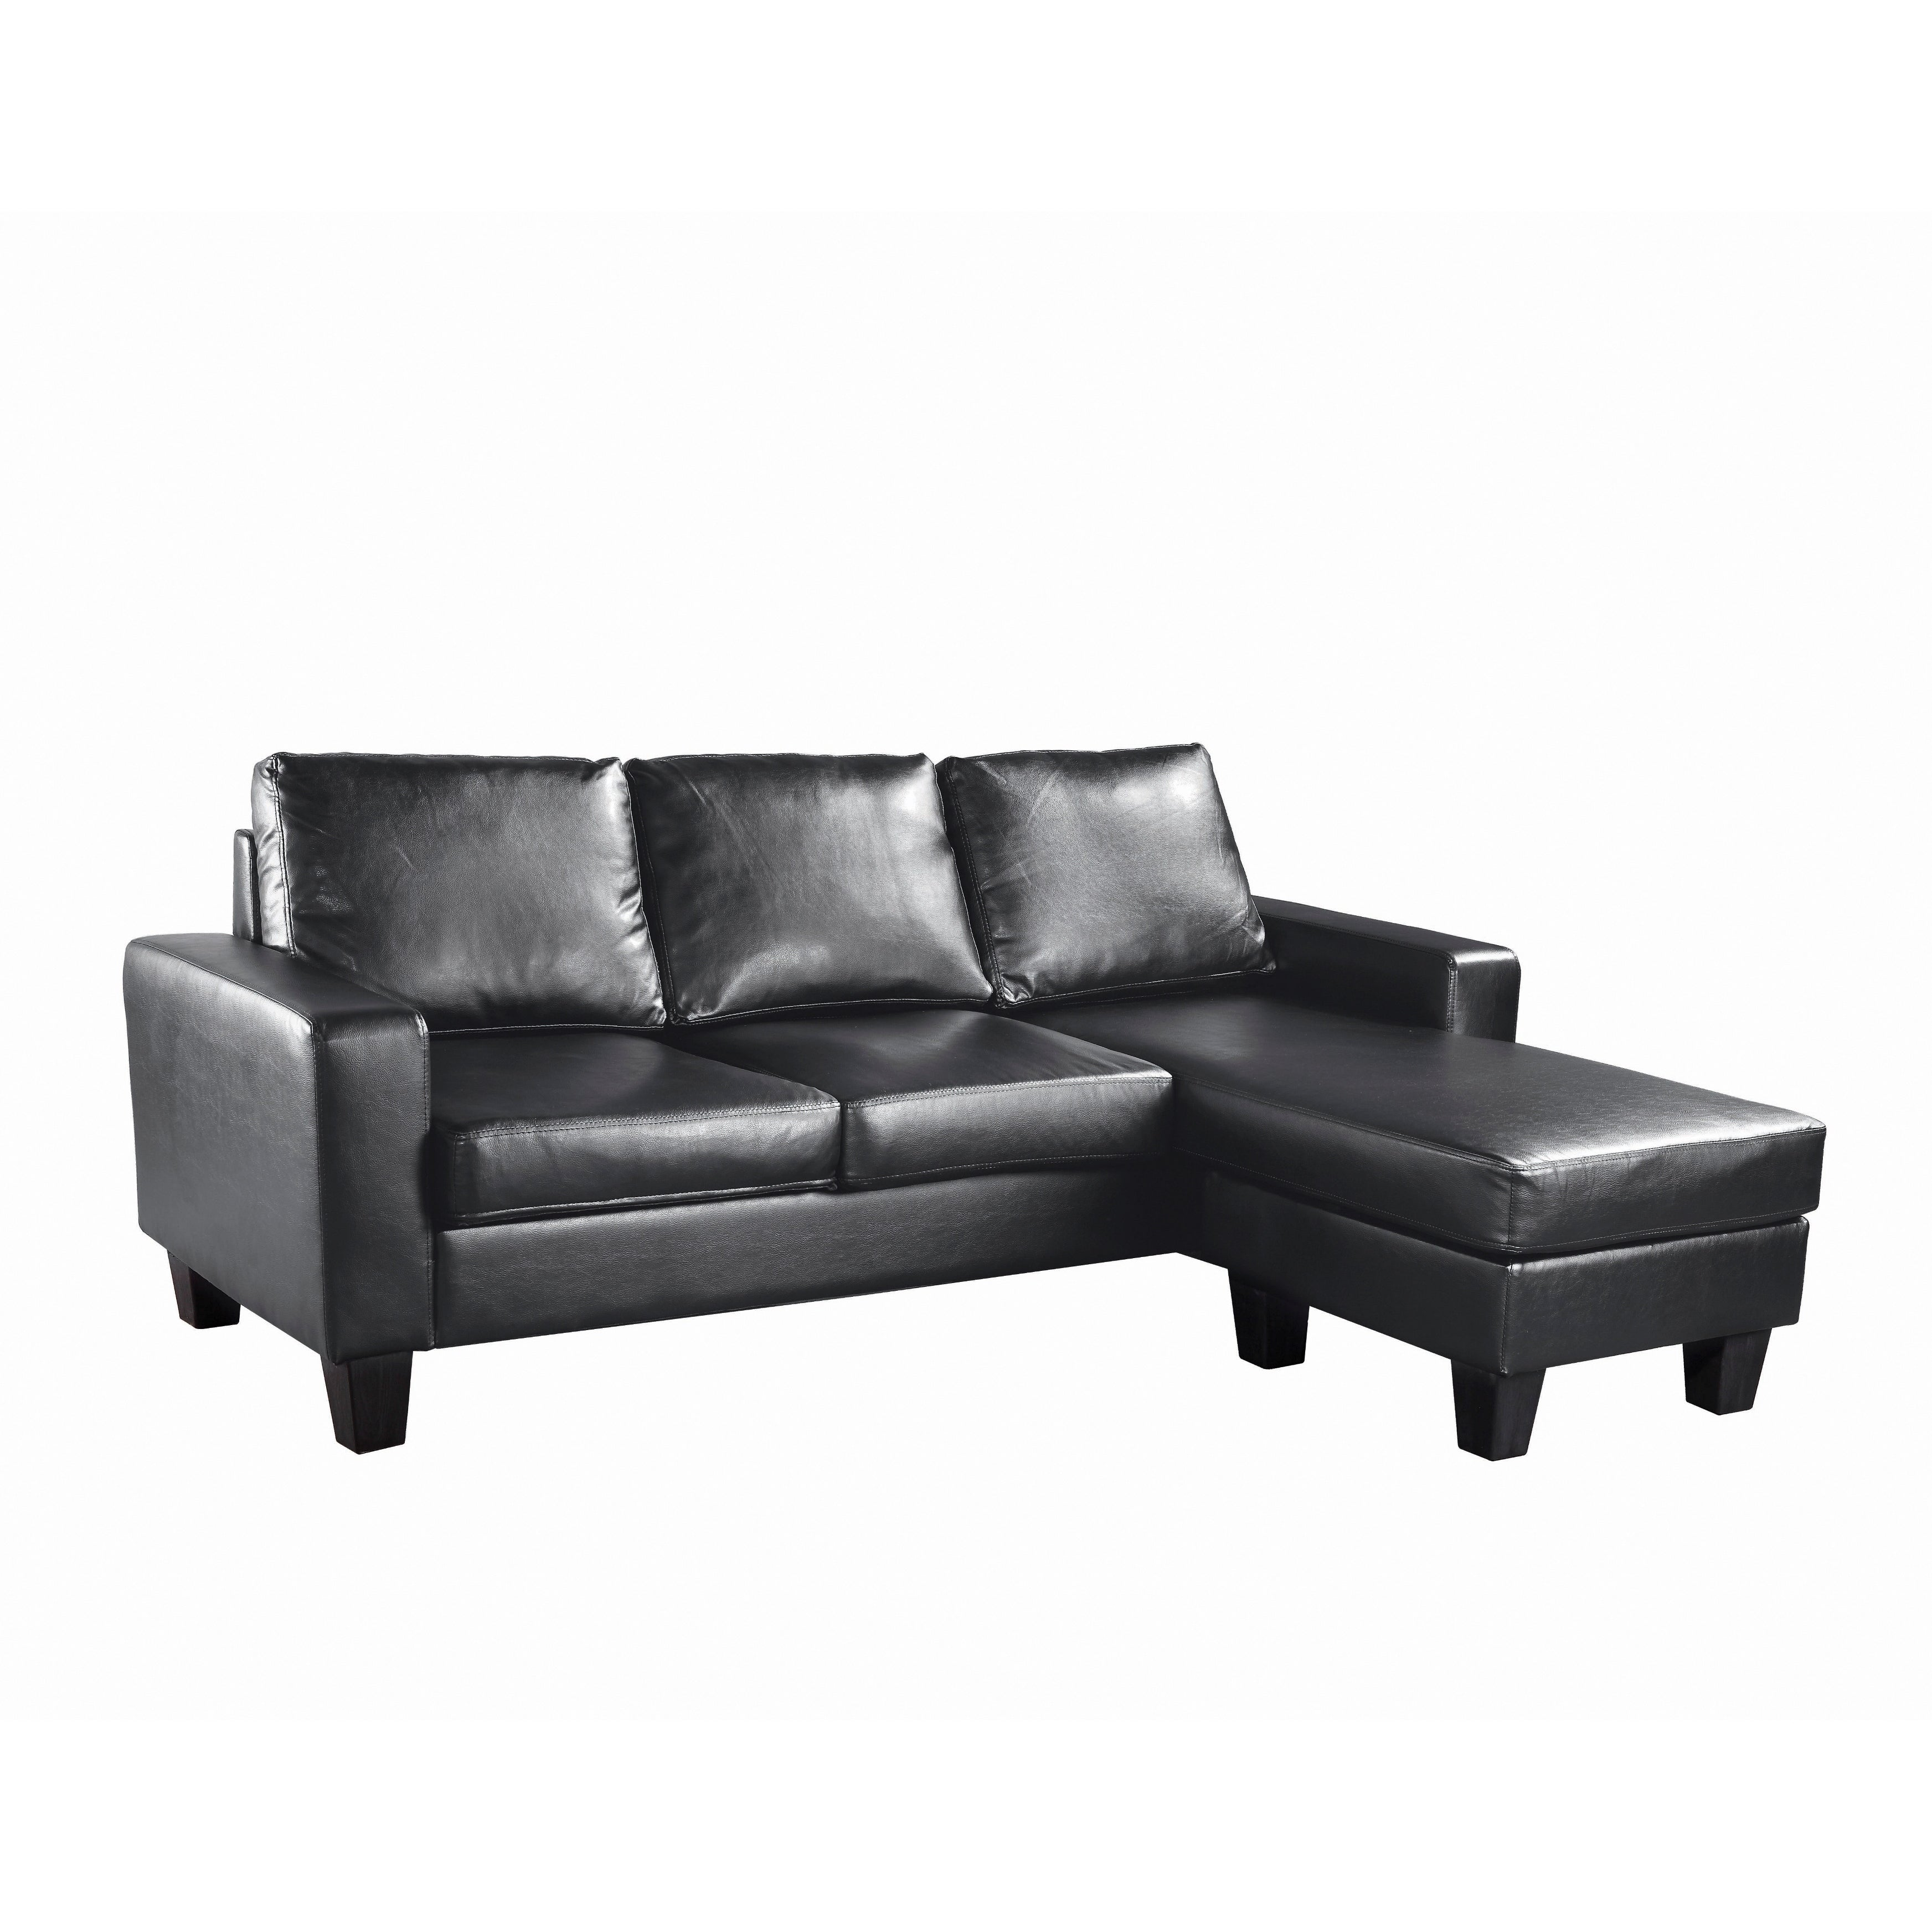 Lyke Home Reversible Apartment Sofa Chaise Free Shipping Today 15925545